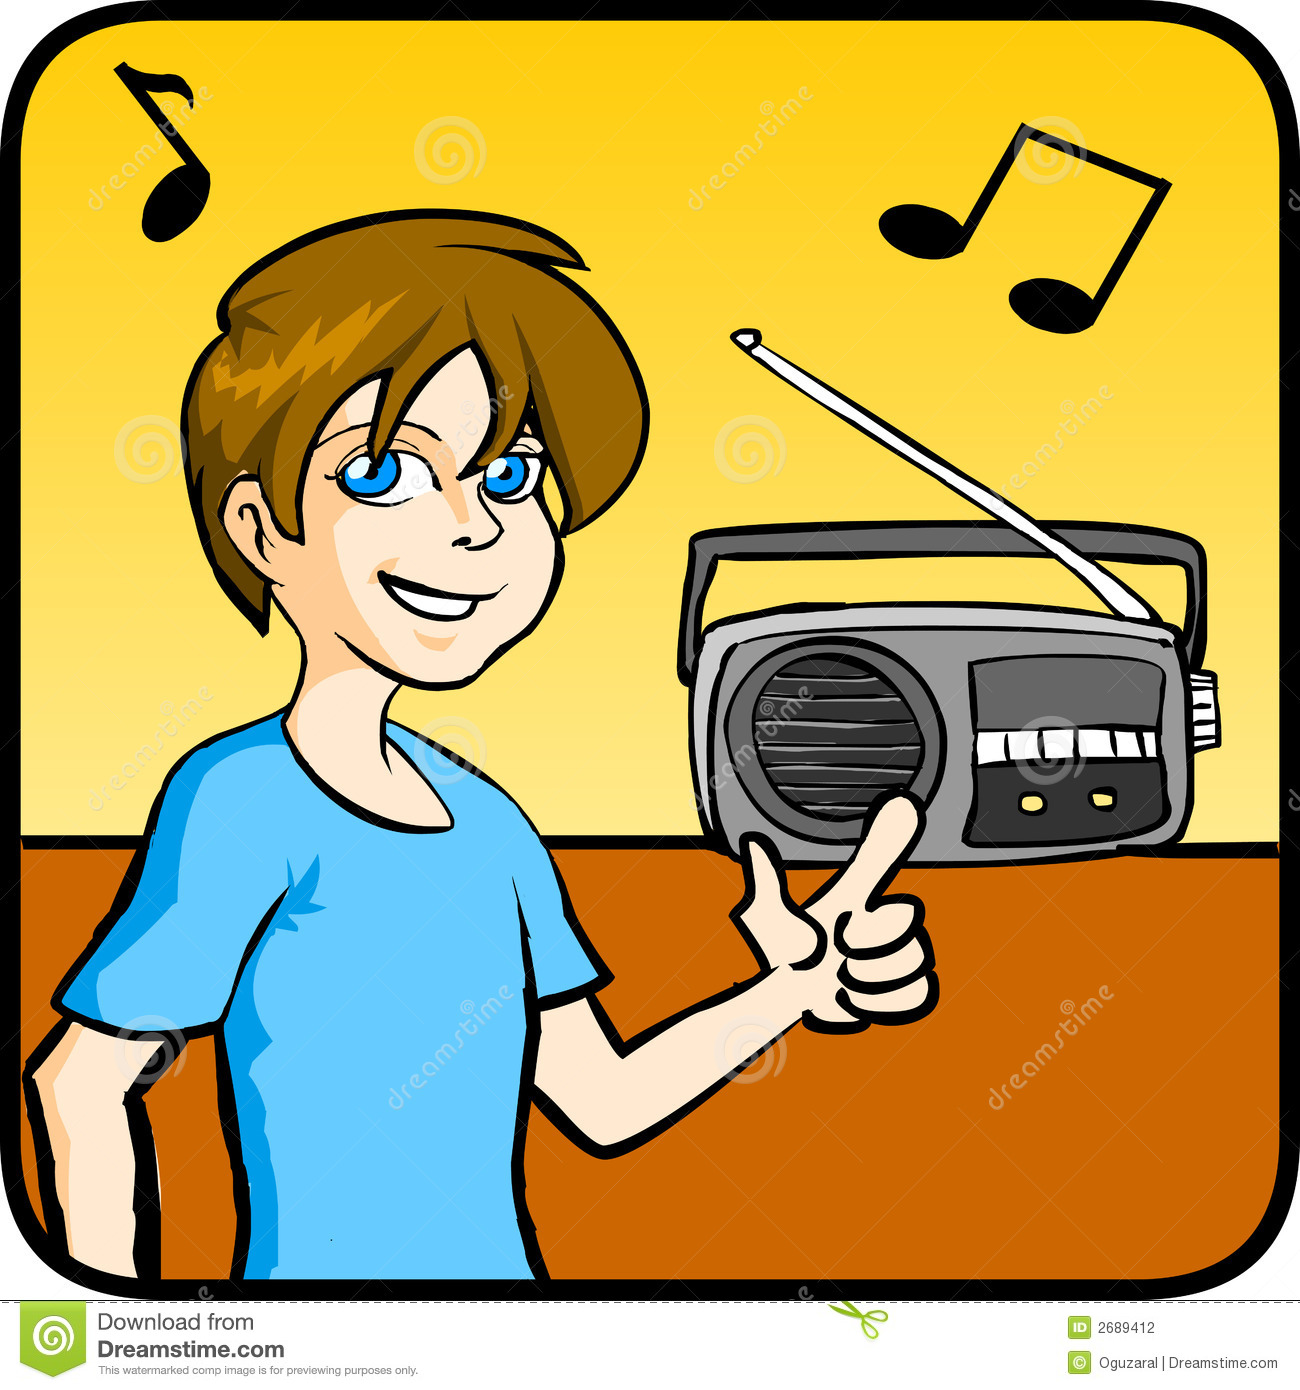 Listening to radio clipart 7 » Clipart Station.